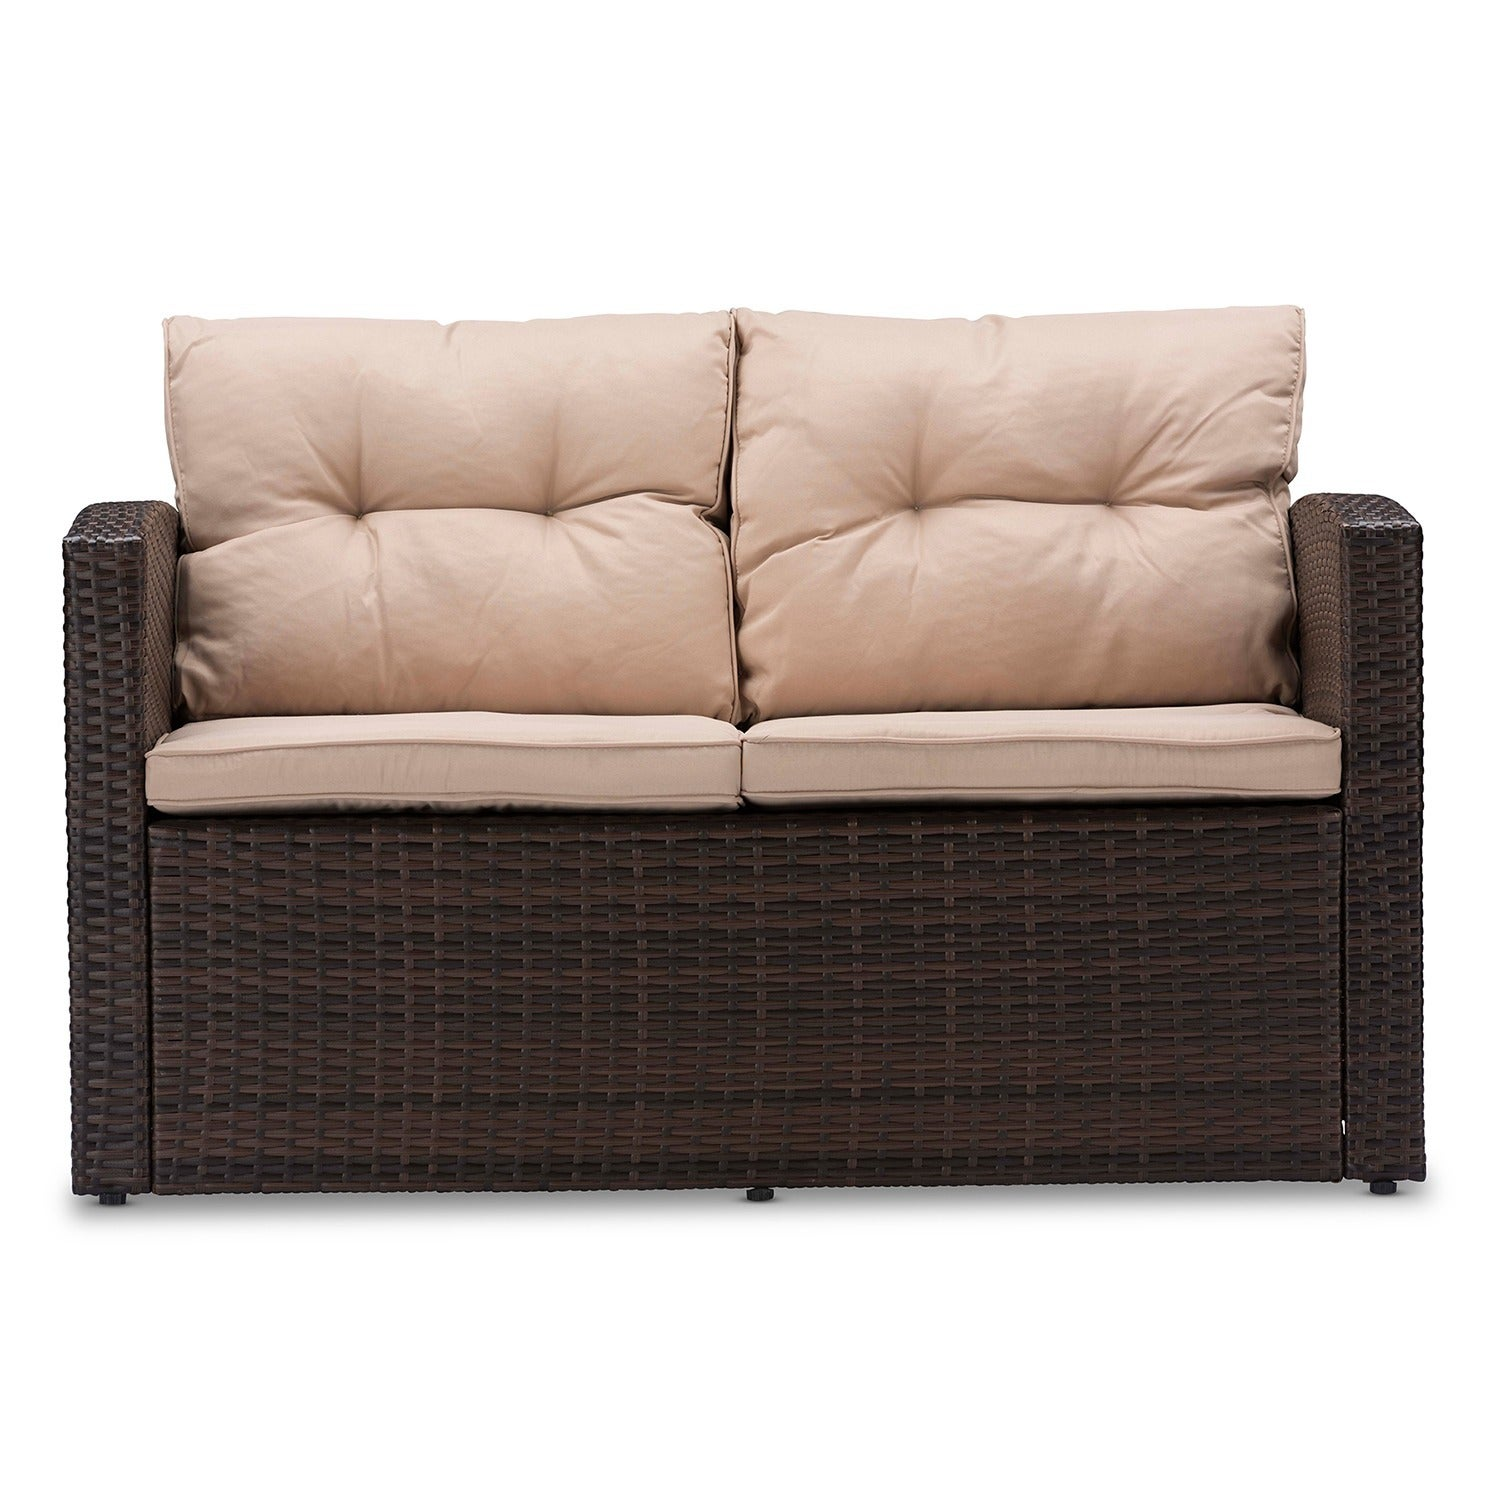 loveseat furniture patio loveseats item outdoor browse chairs by